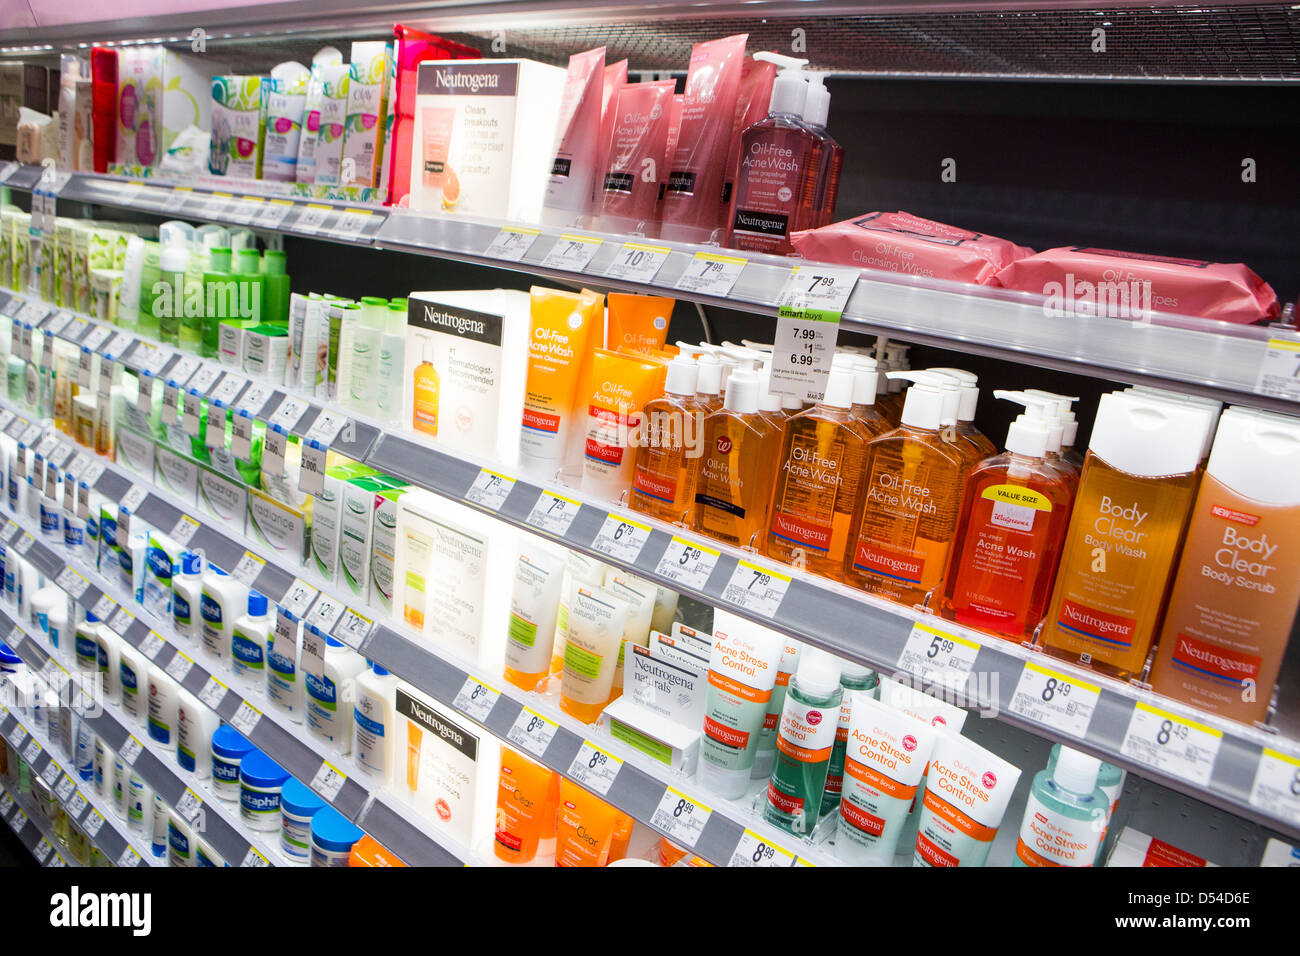 Neutrogena lotion on display at a Walgreens Flagship store in downtown Washington, DC. - Stock Image